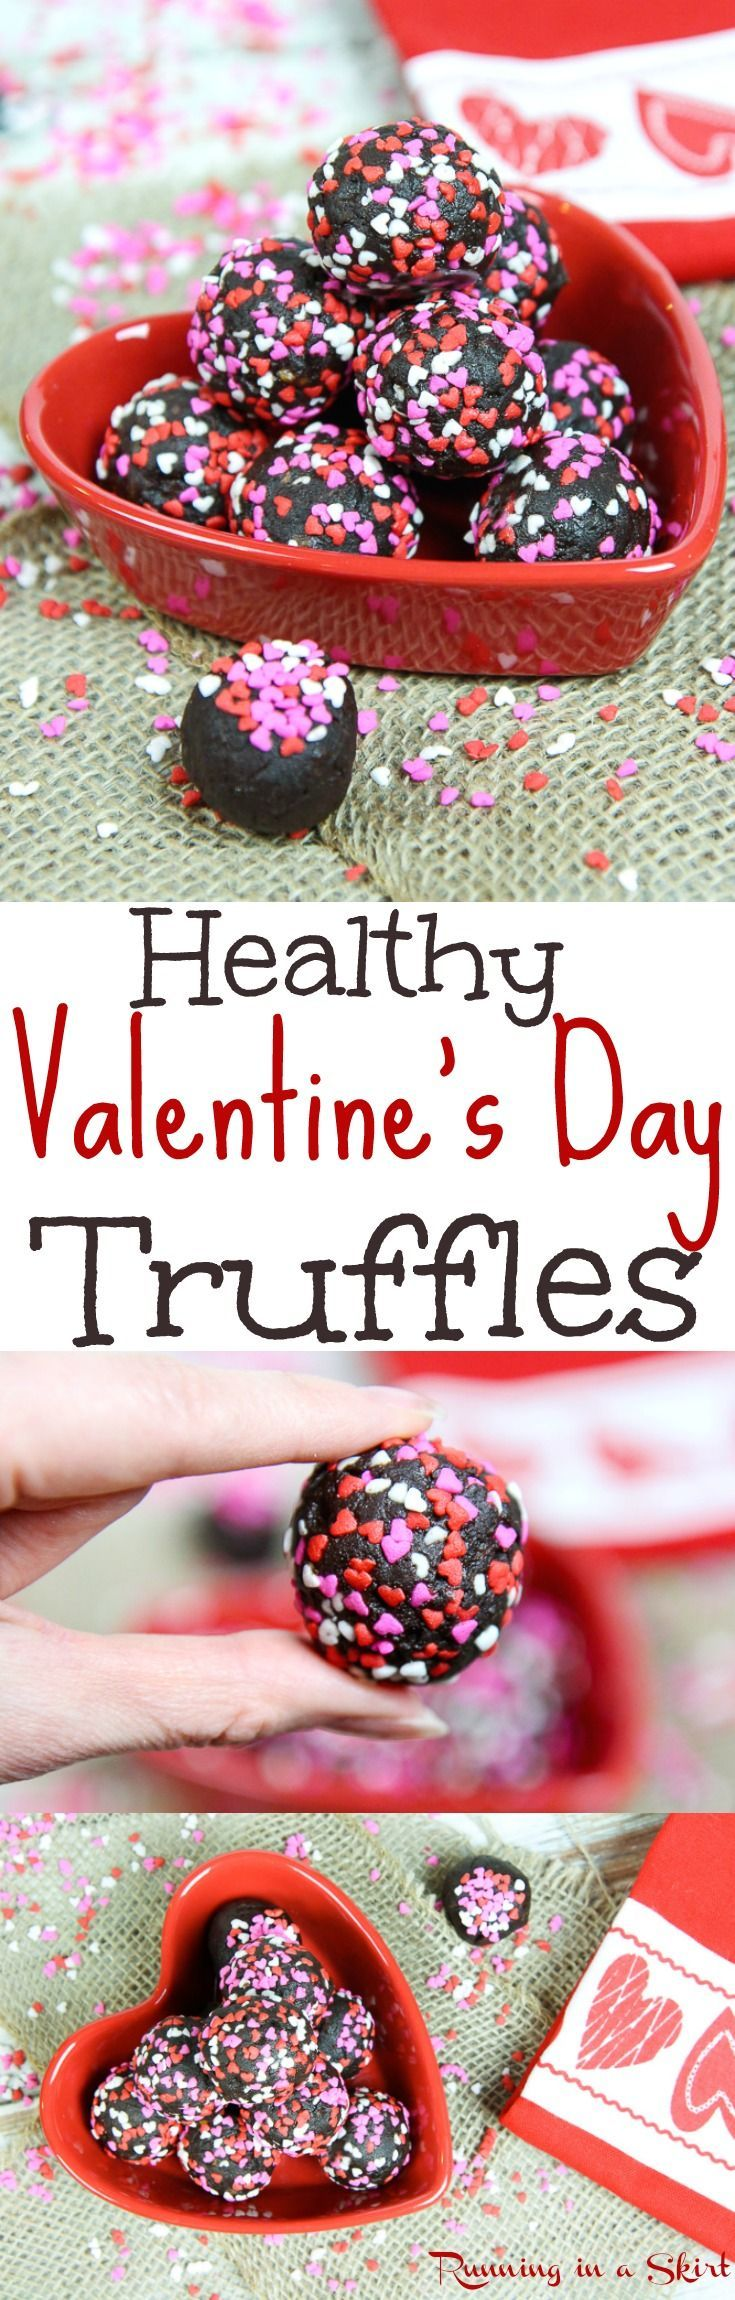 Clean Eating Healthy Chocolate & Date Truffles recipe for Valentine's Day.  Only 4 Ingredients.  The perfect easy, raw vegan energy bites dessert recipes!  This dairy free treat is delicious and features almond butter or your favorite nut butter.  / Running in a Skirt